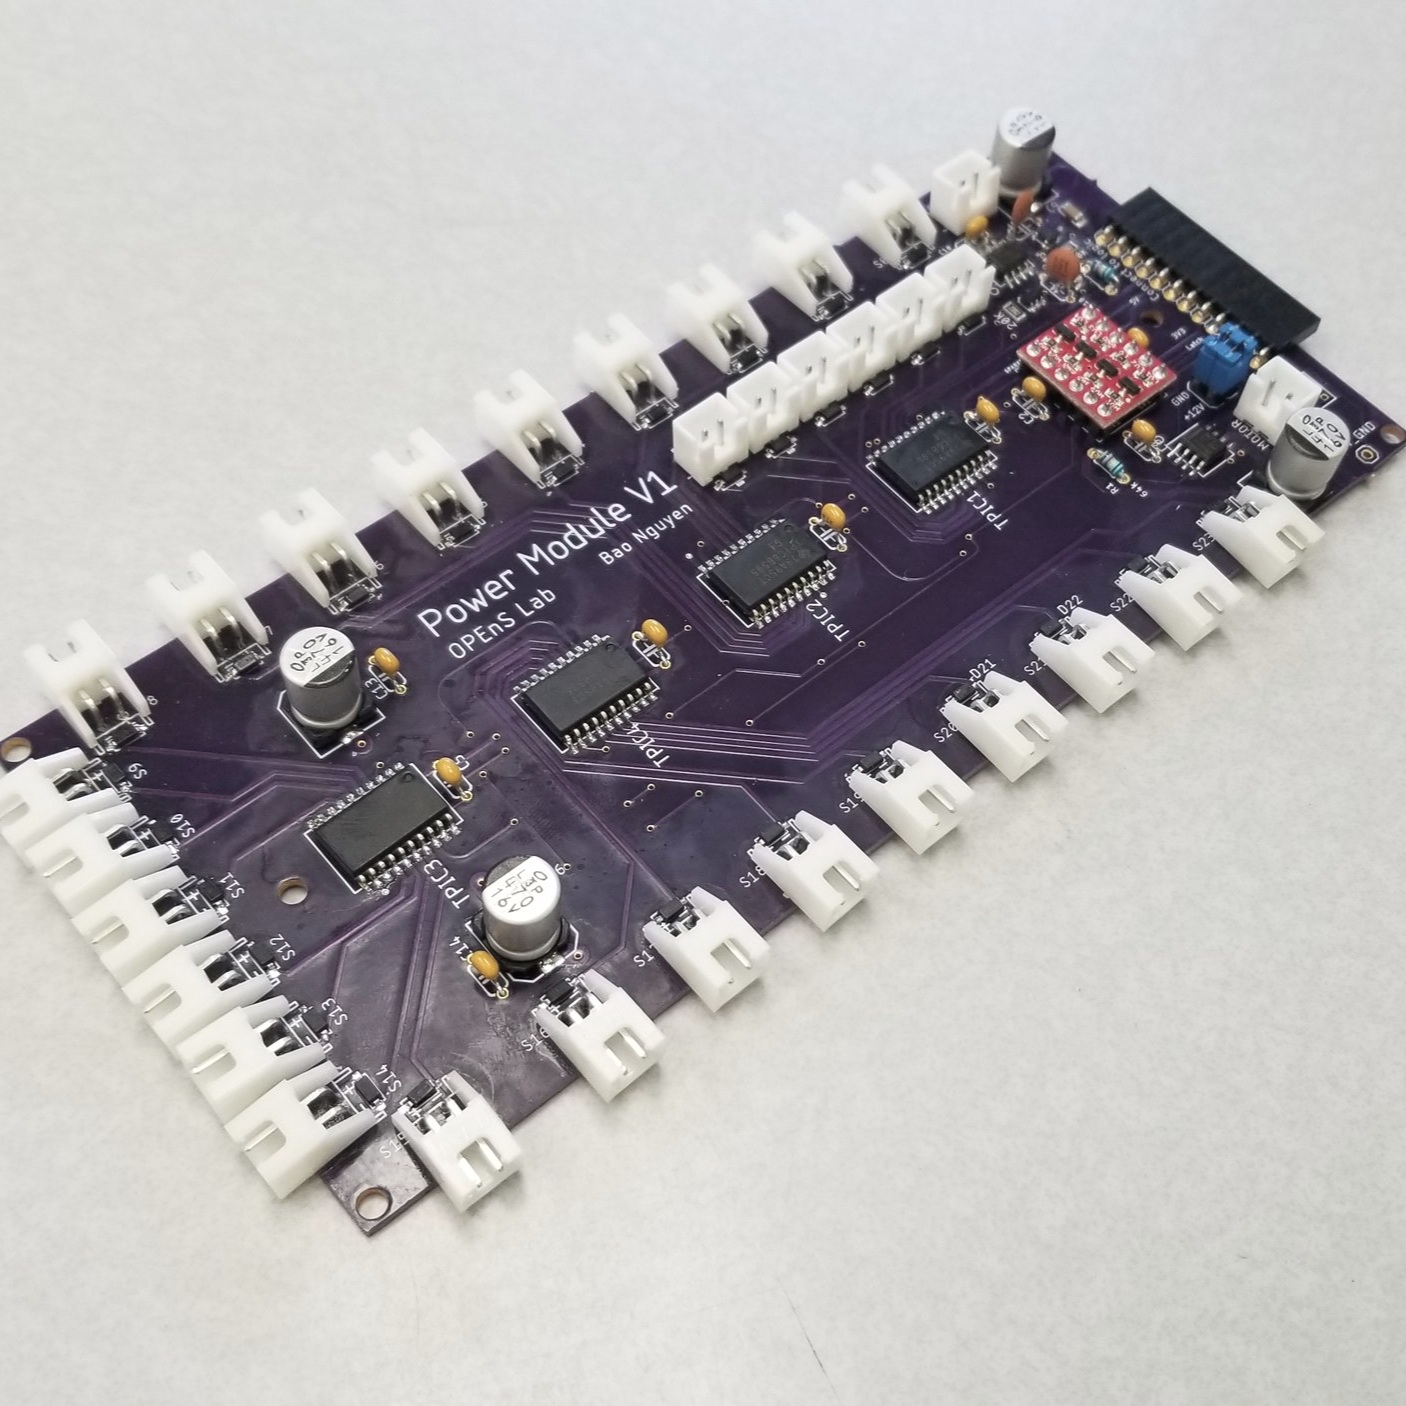 First glimpse of the new PCB - This is the first prototype for the new PCB design for the eDNA and will be used for the newer version of the OpenSampler. This is the Power Module board and will be plugged in with two more boards: Logic Module and Sensor Module.